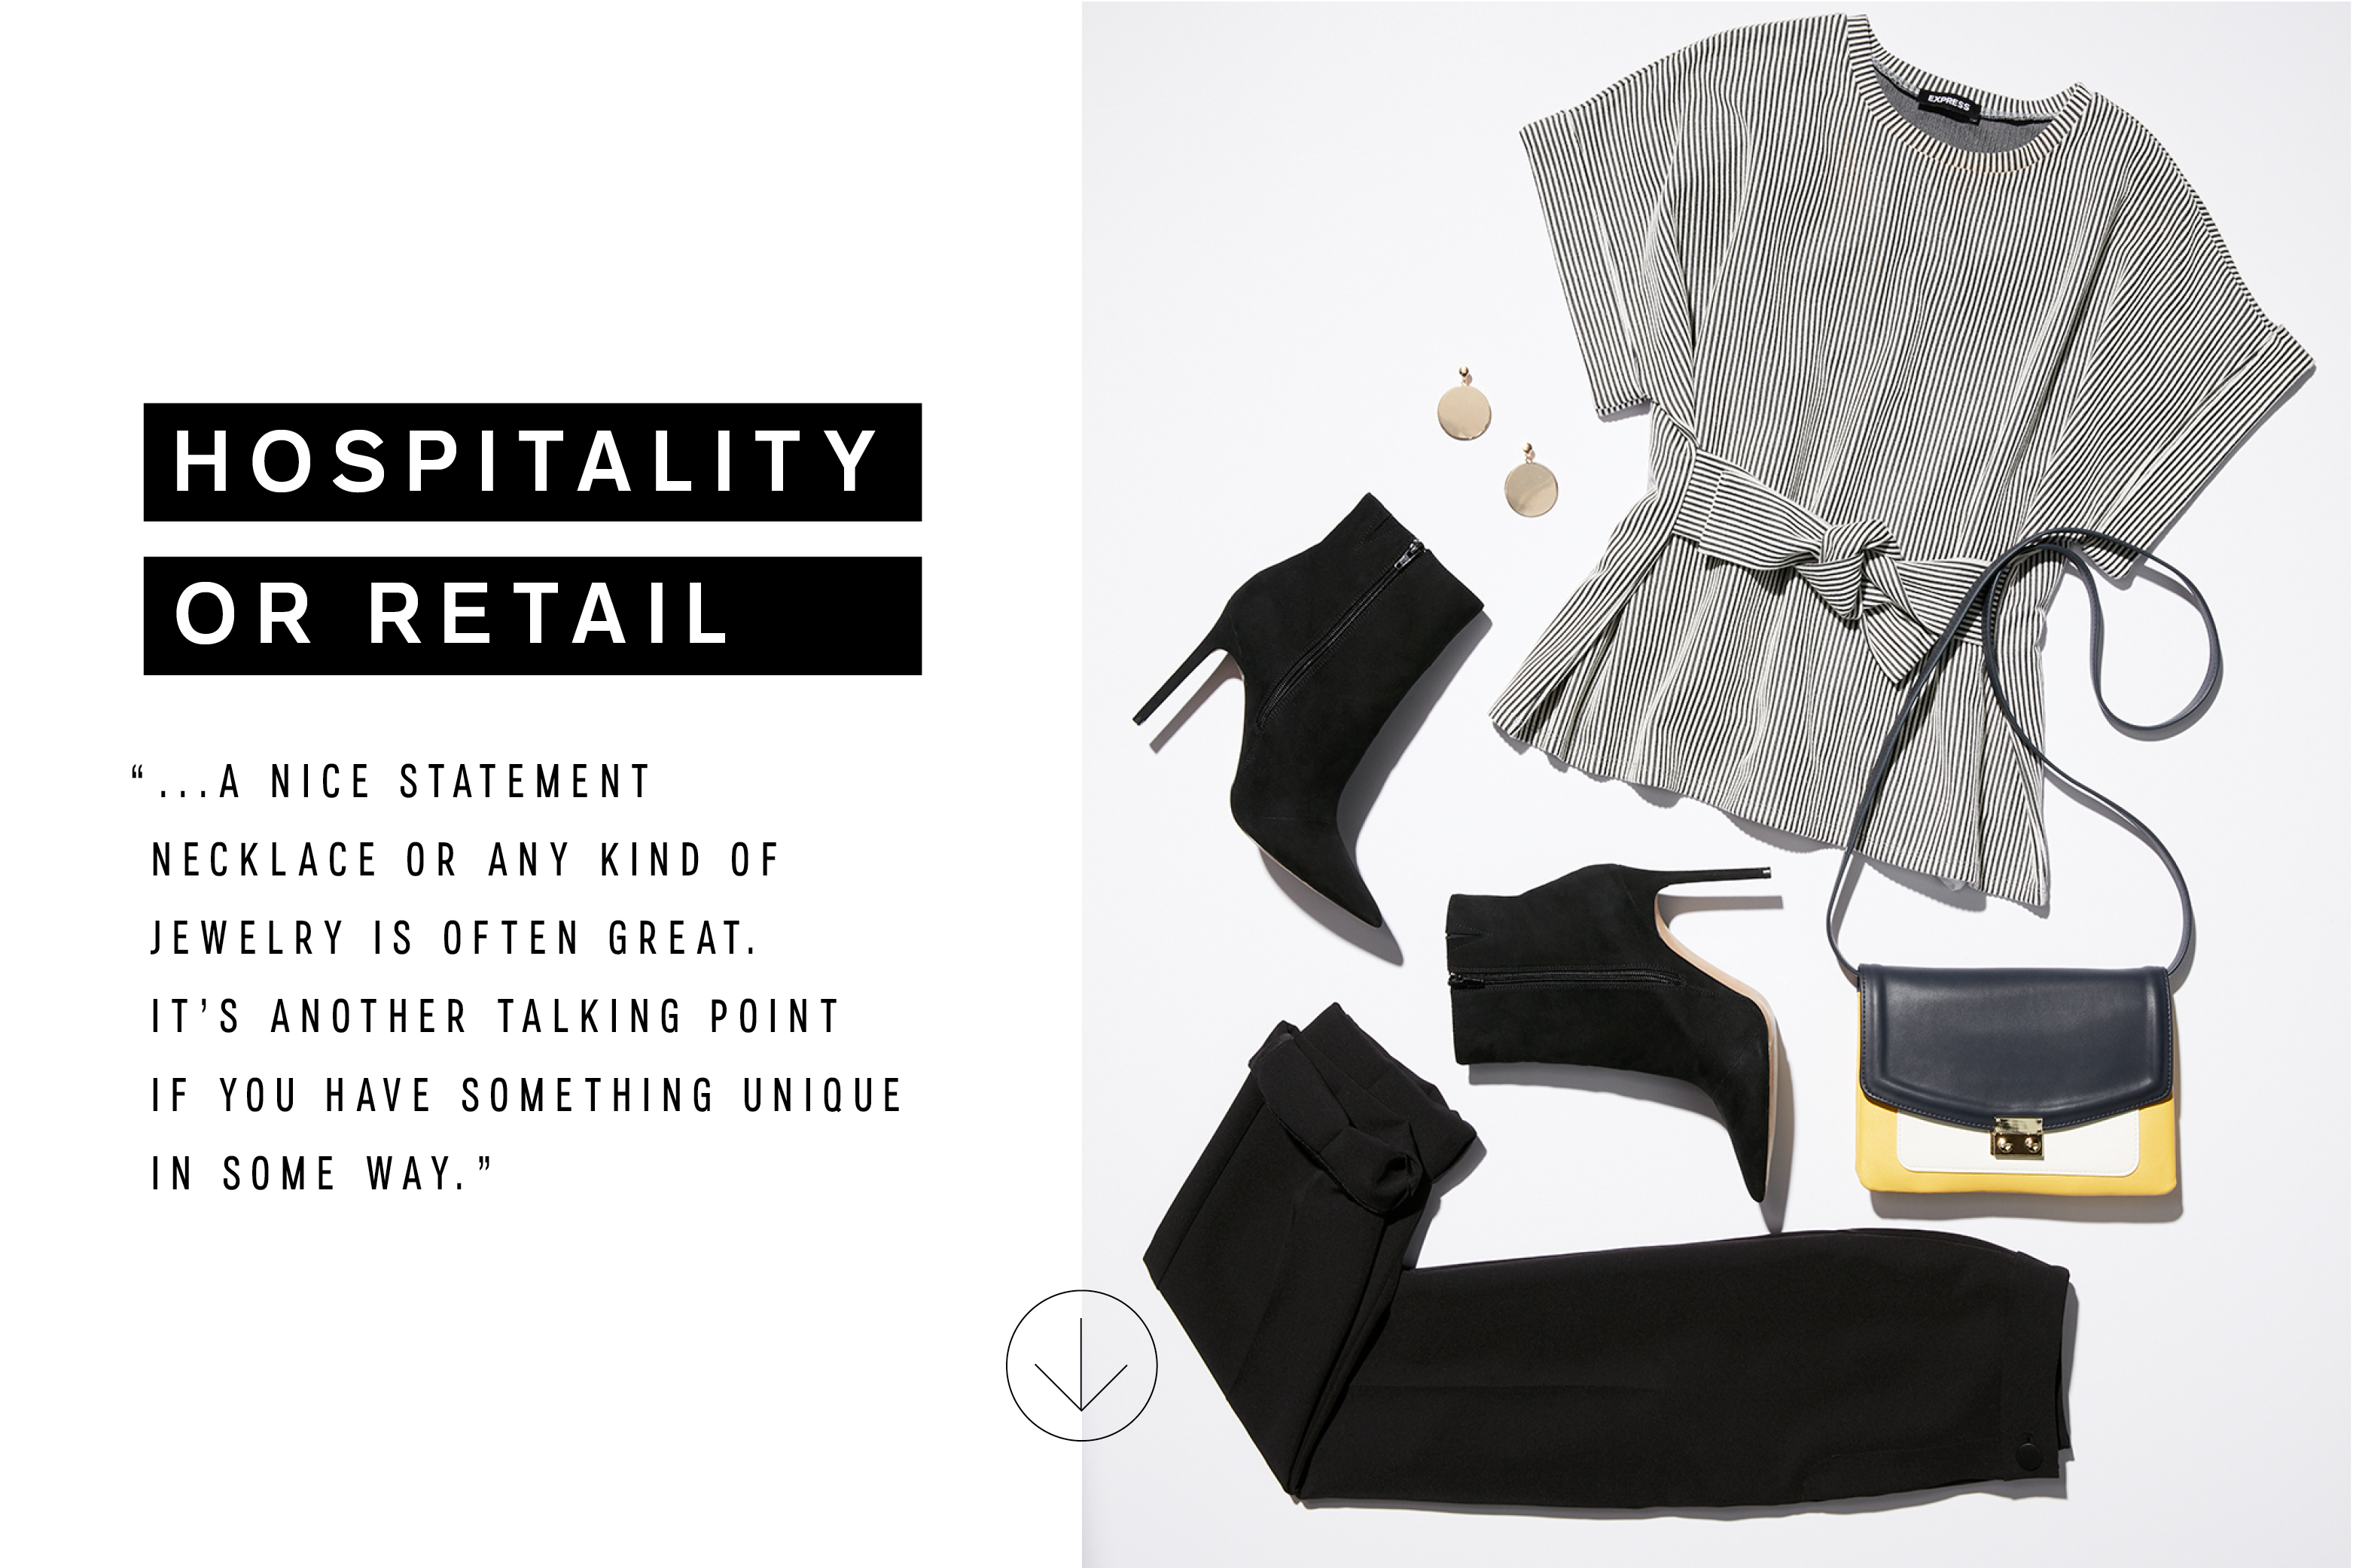 womens-hospitality-retail-what-to-wear